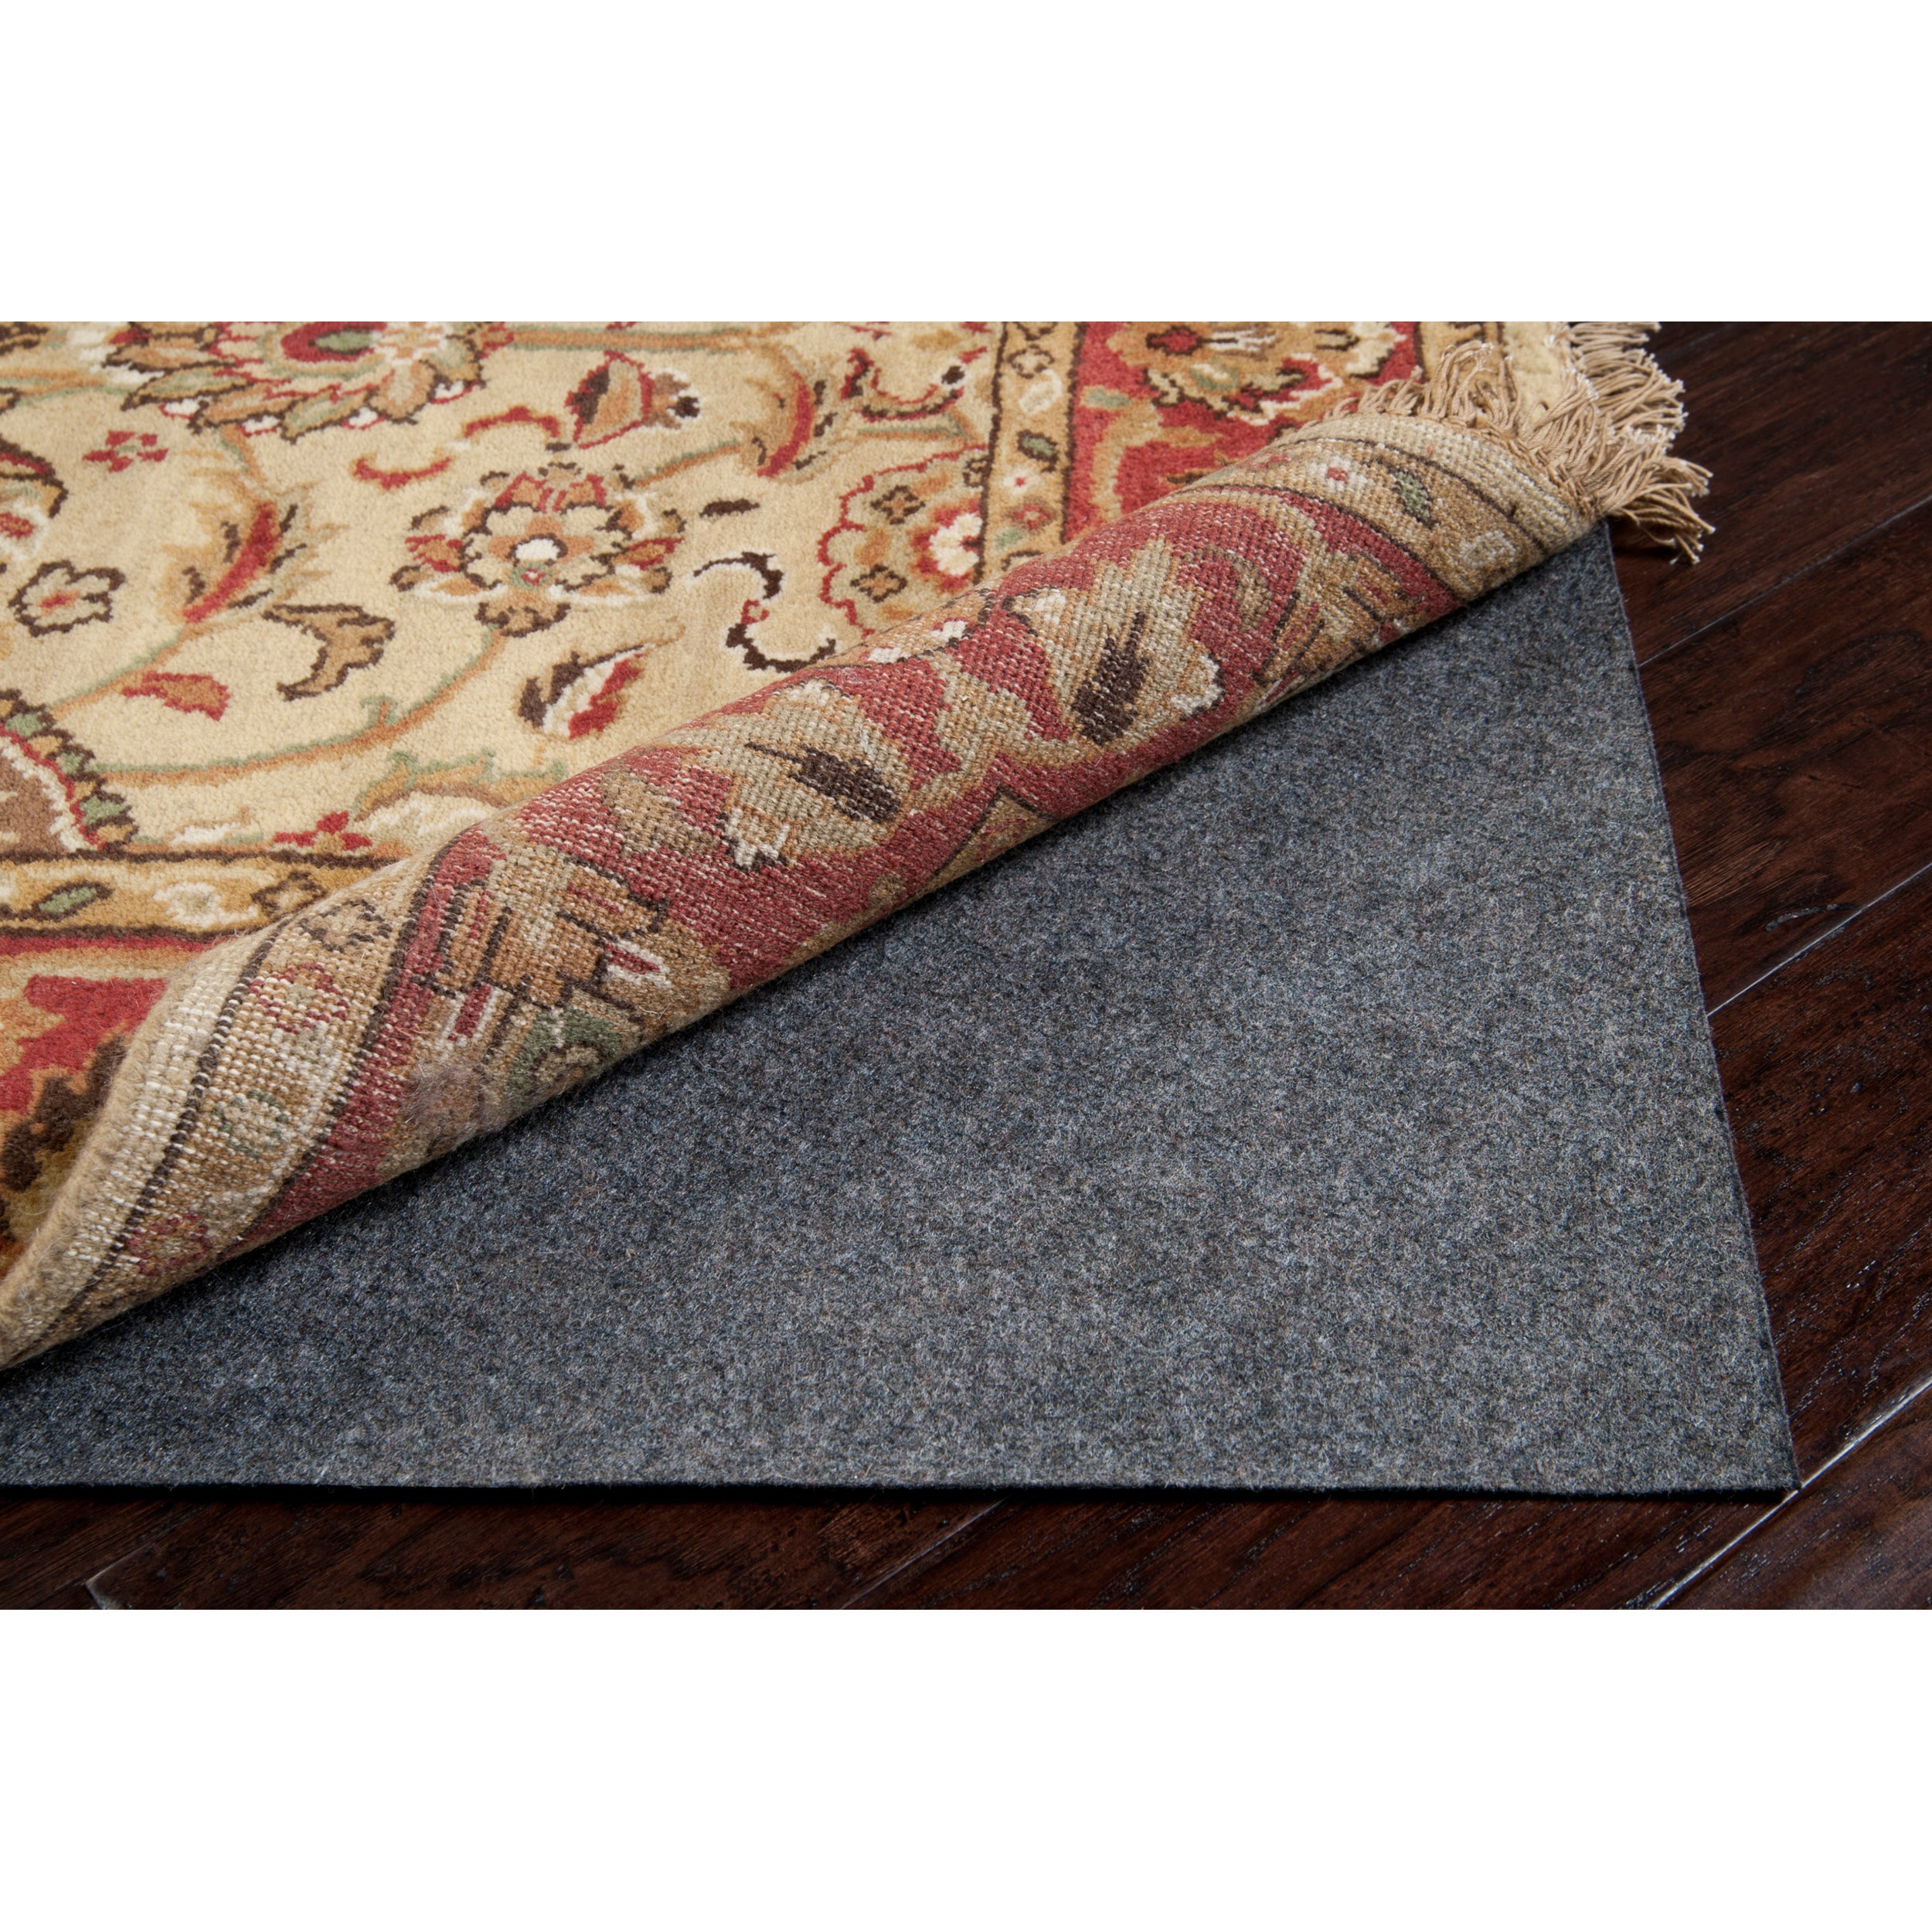 Shop Prime Dual Felt Rug Pad 4 10 X 7 10 On Sale